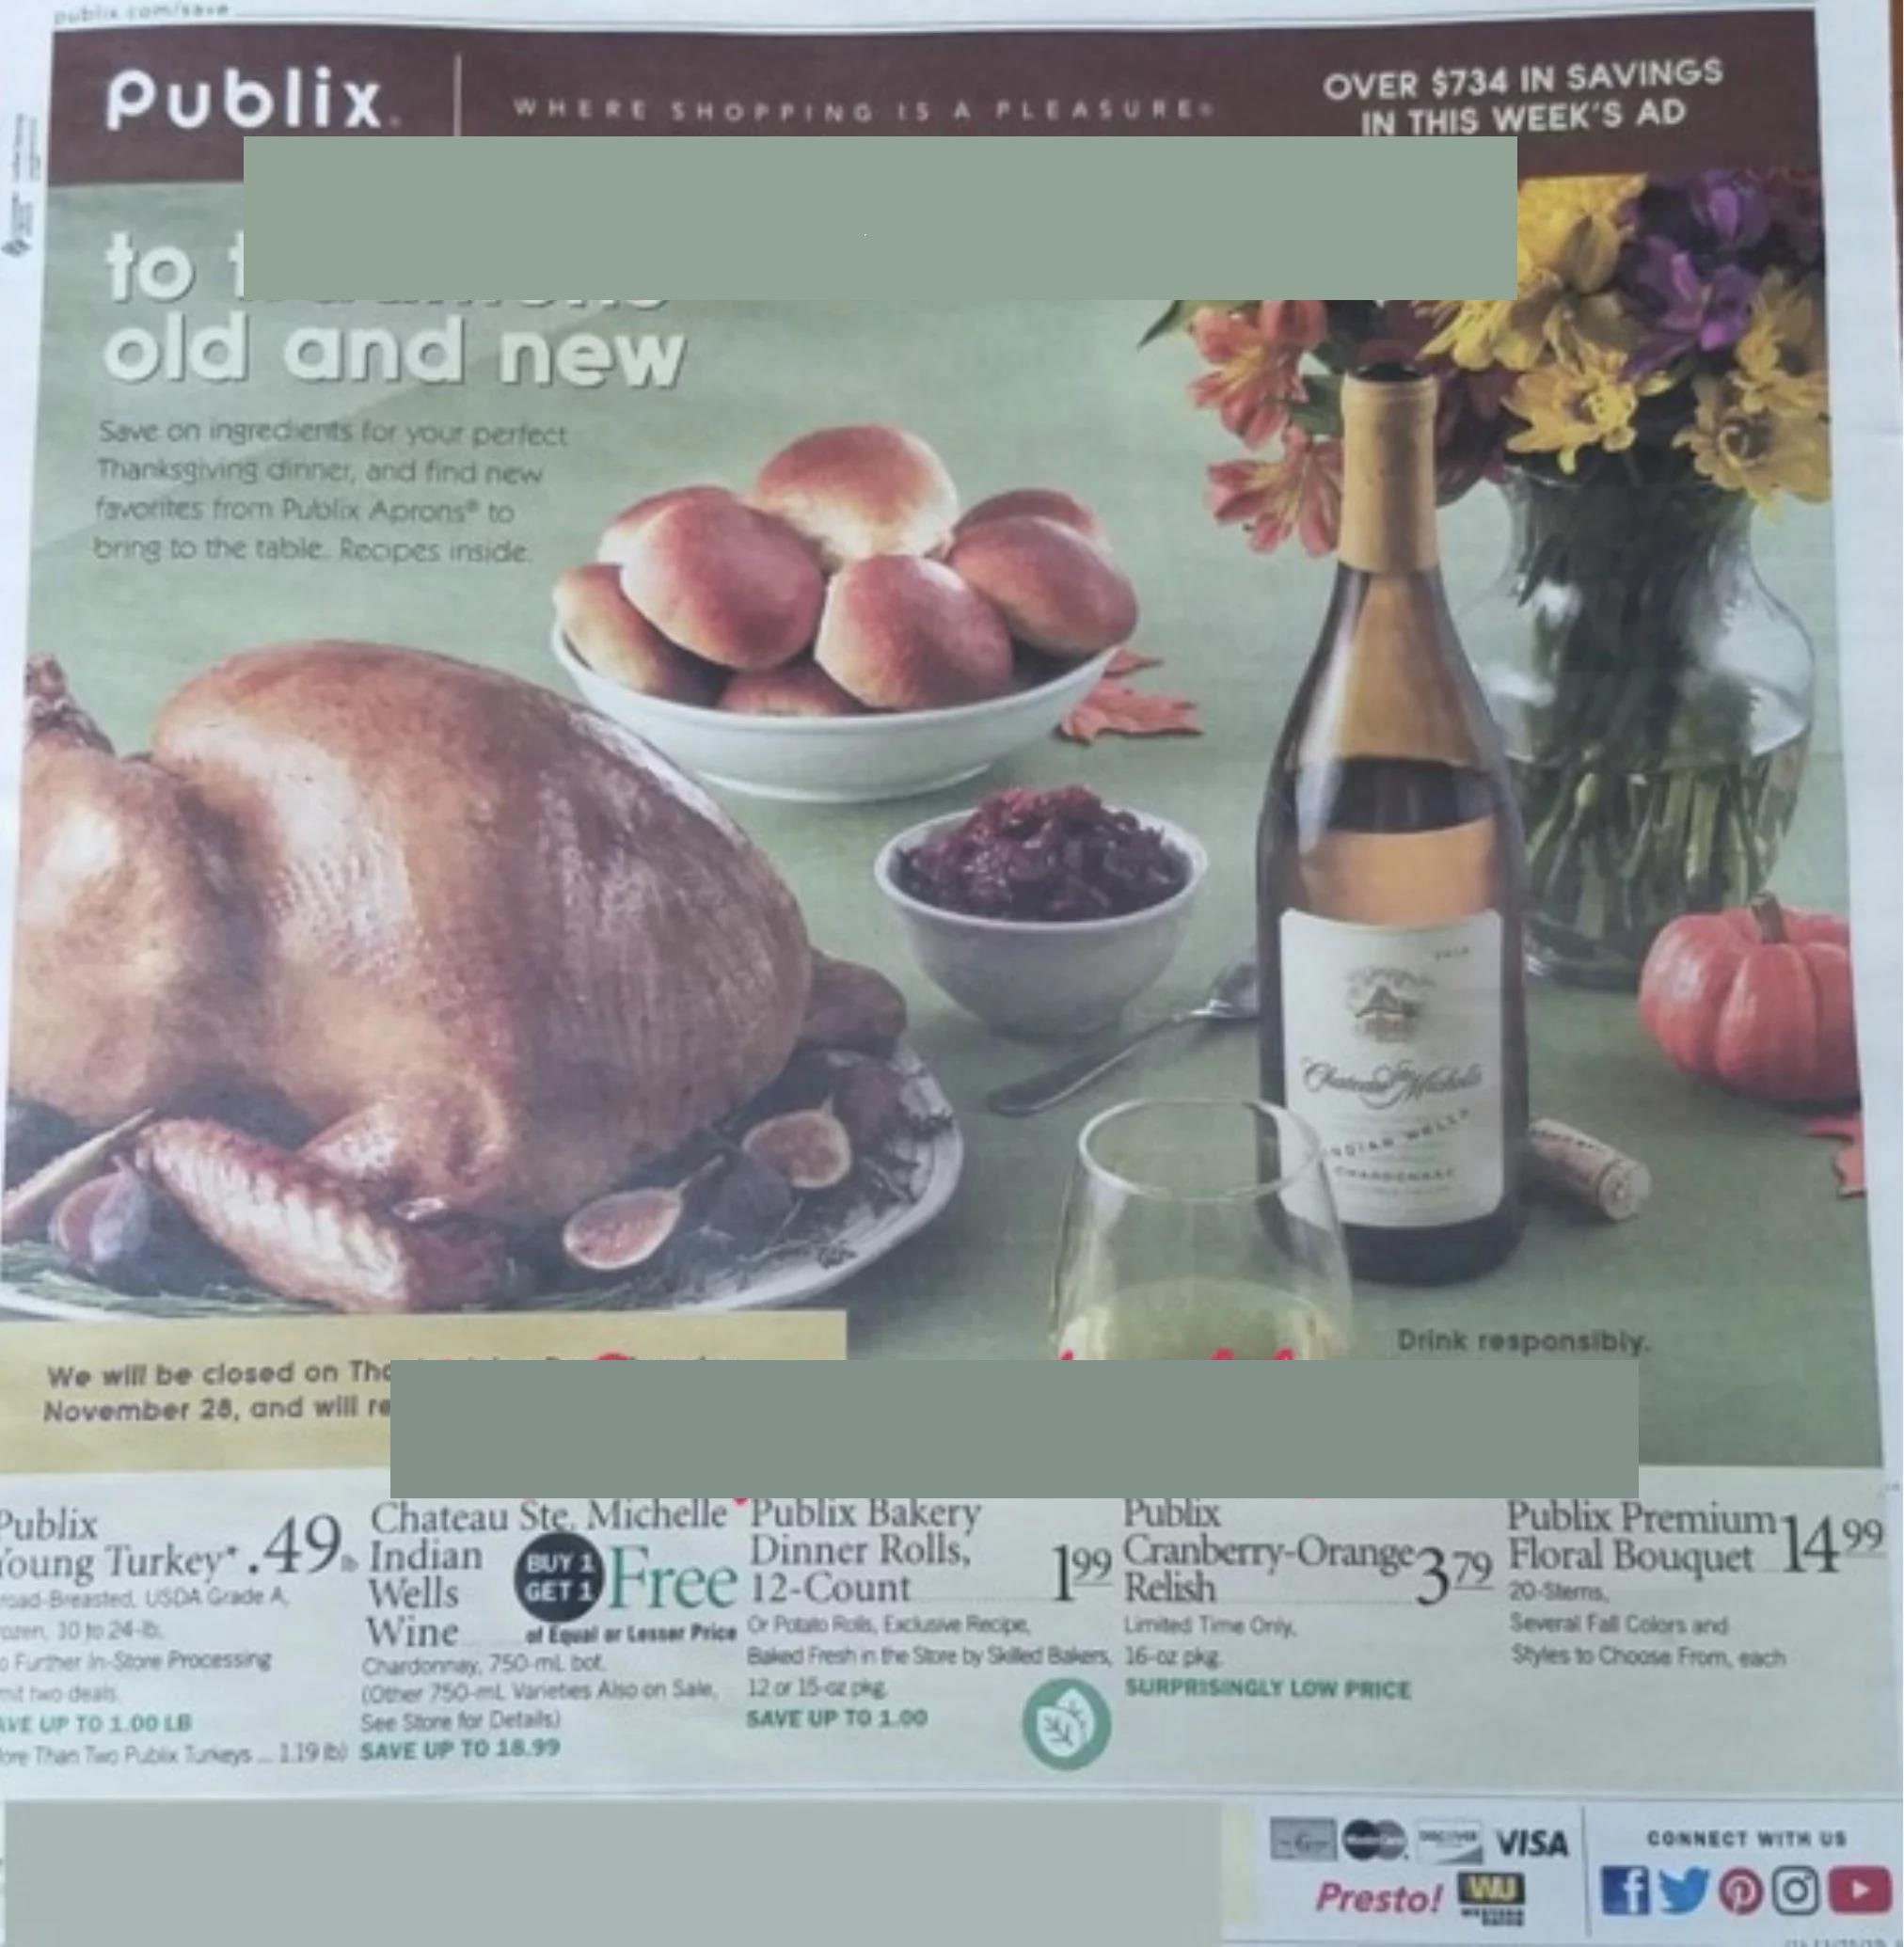 Publix Weekly Ad Preview Nov 20 - 27, 2019